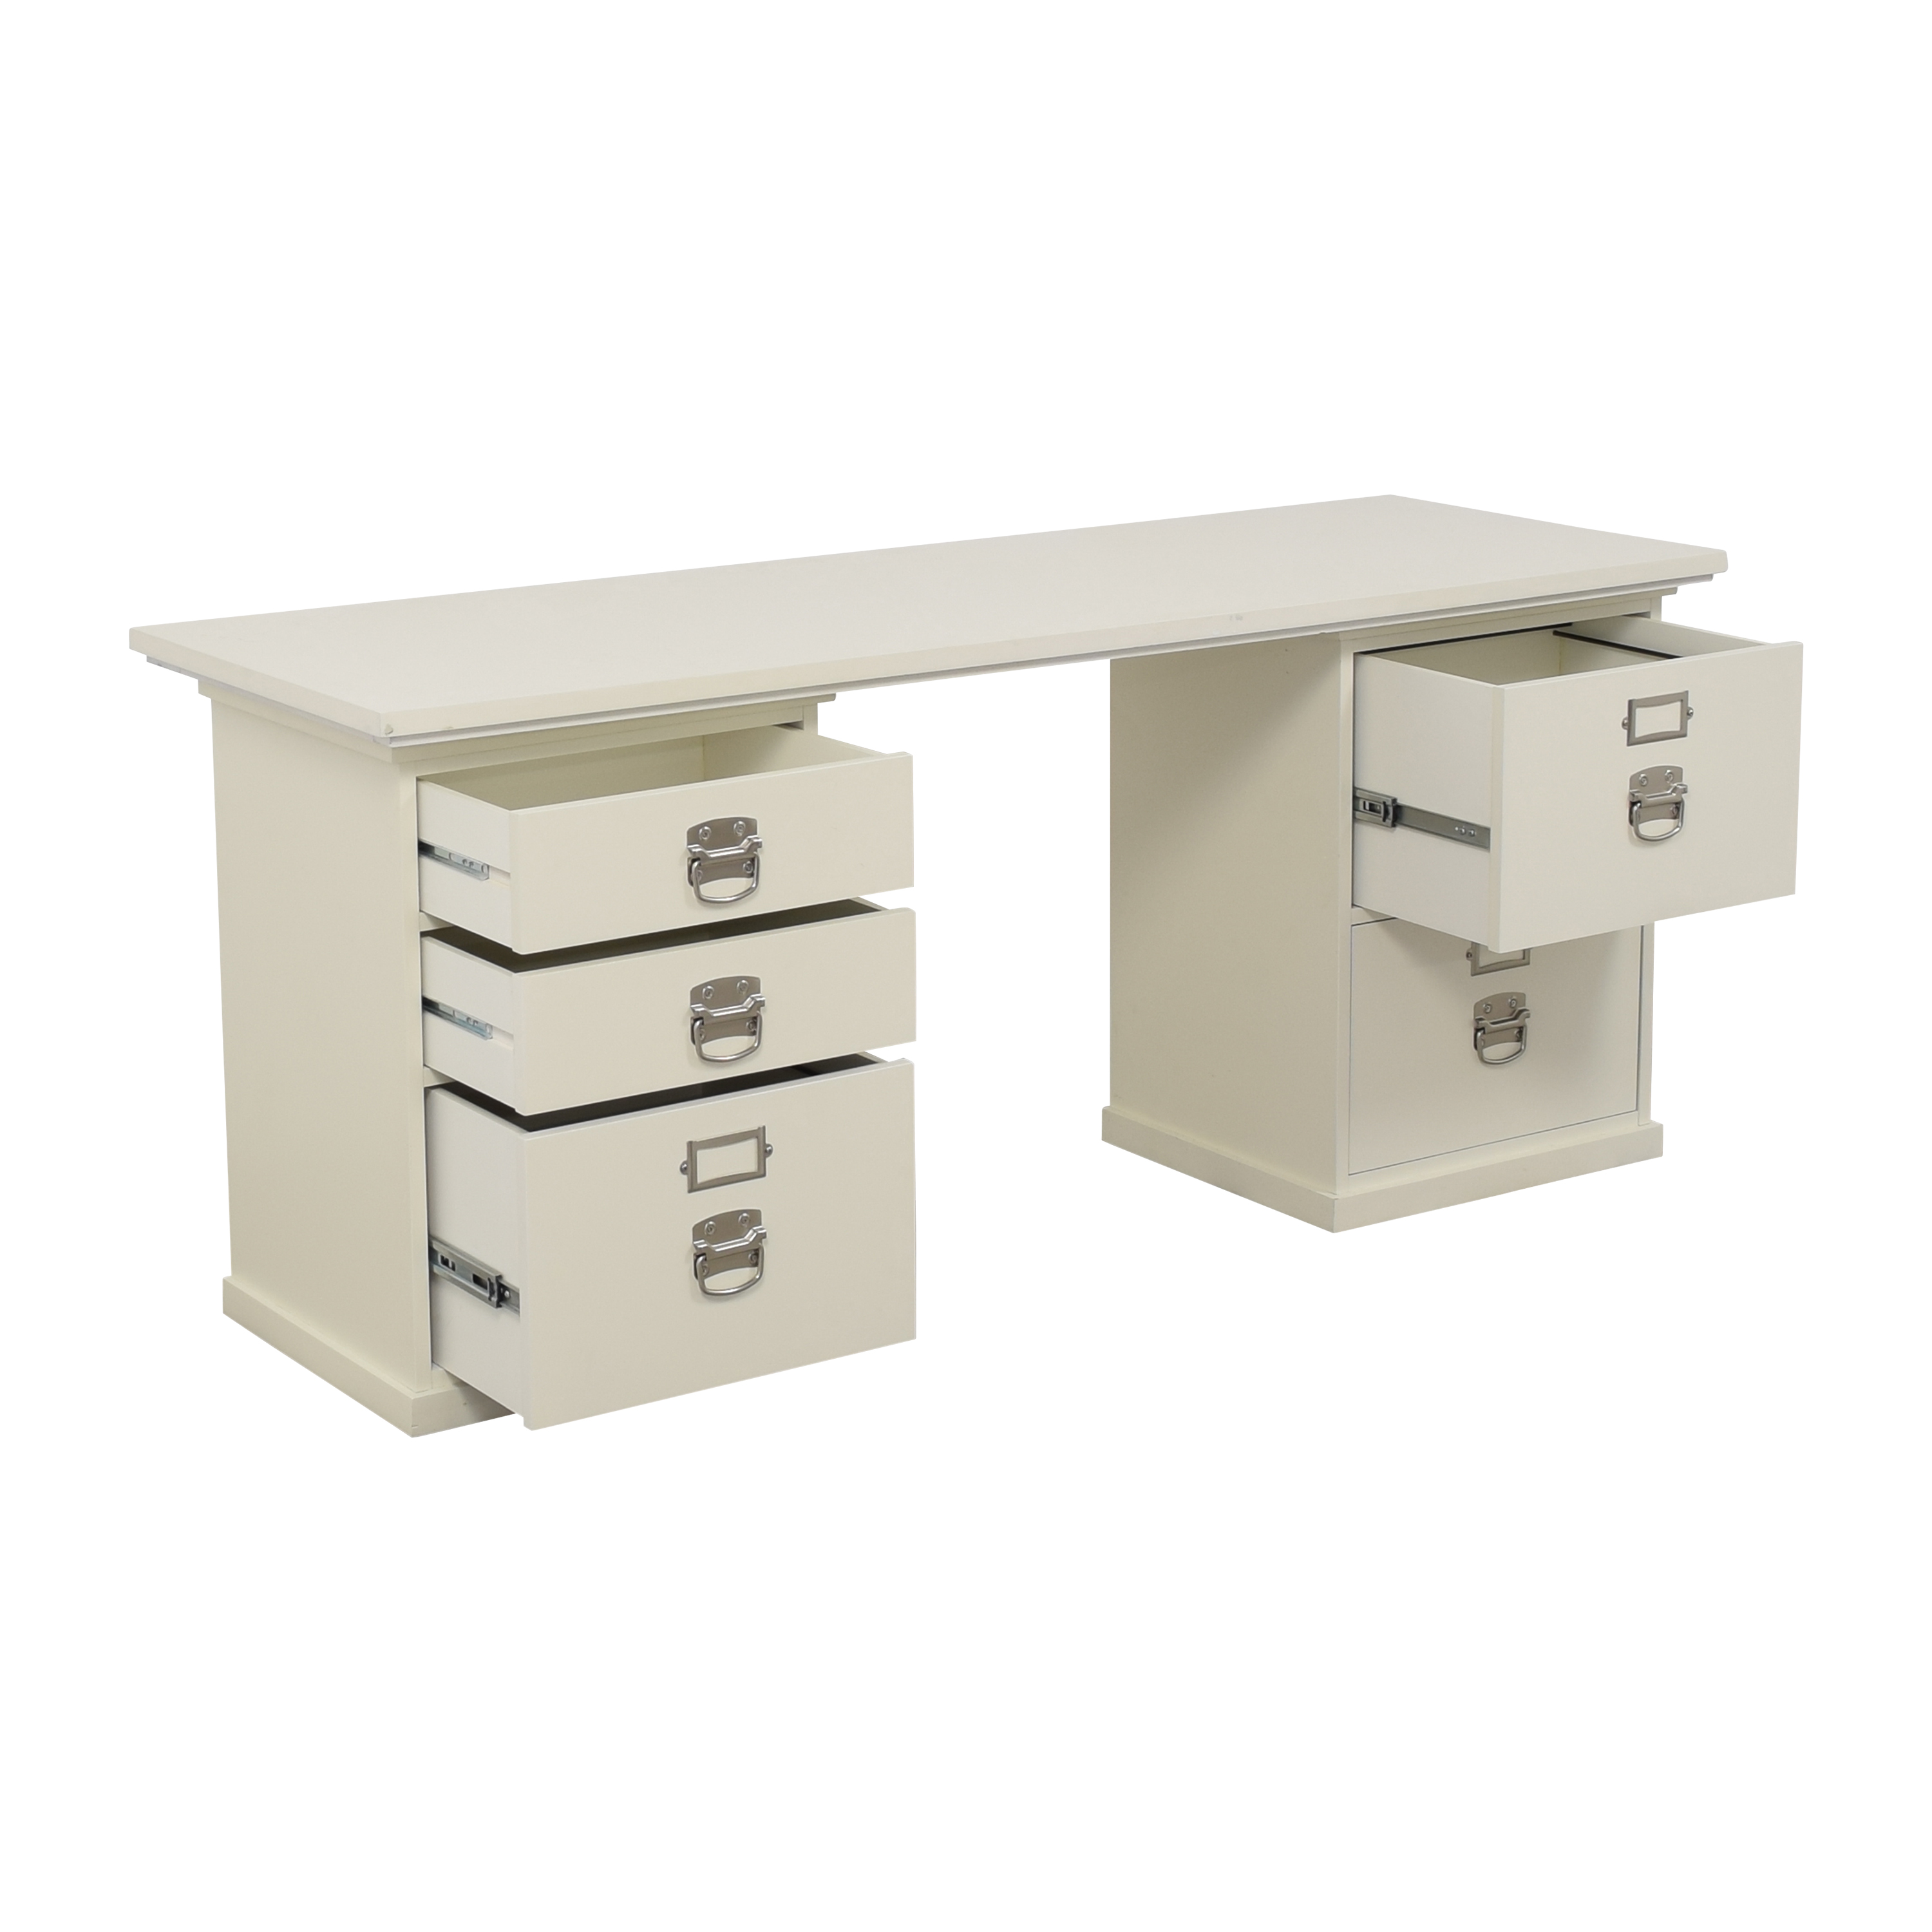 Pottery Barn Pottery Barn Bedford Desk with Five Drawers ct